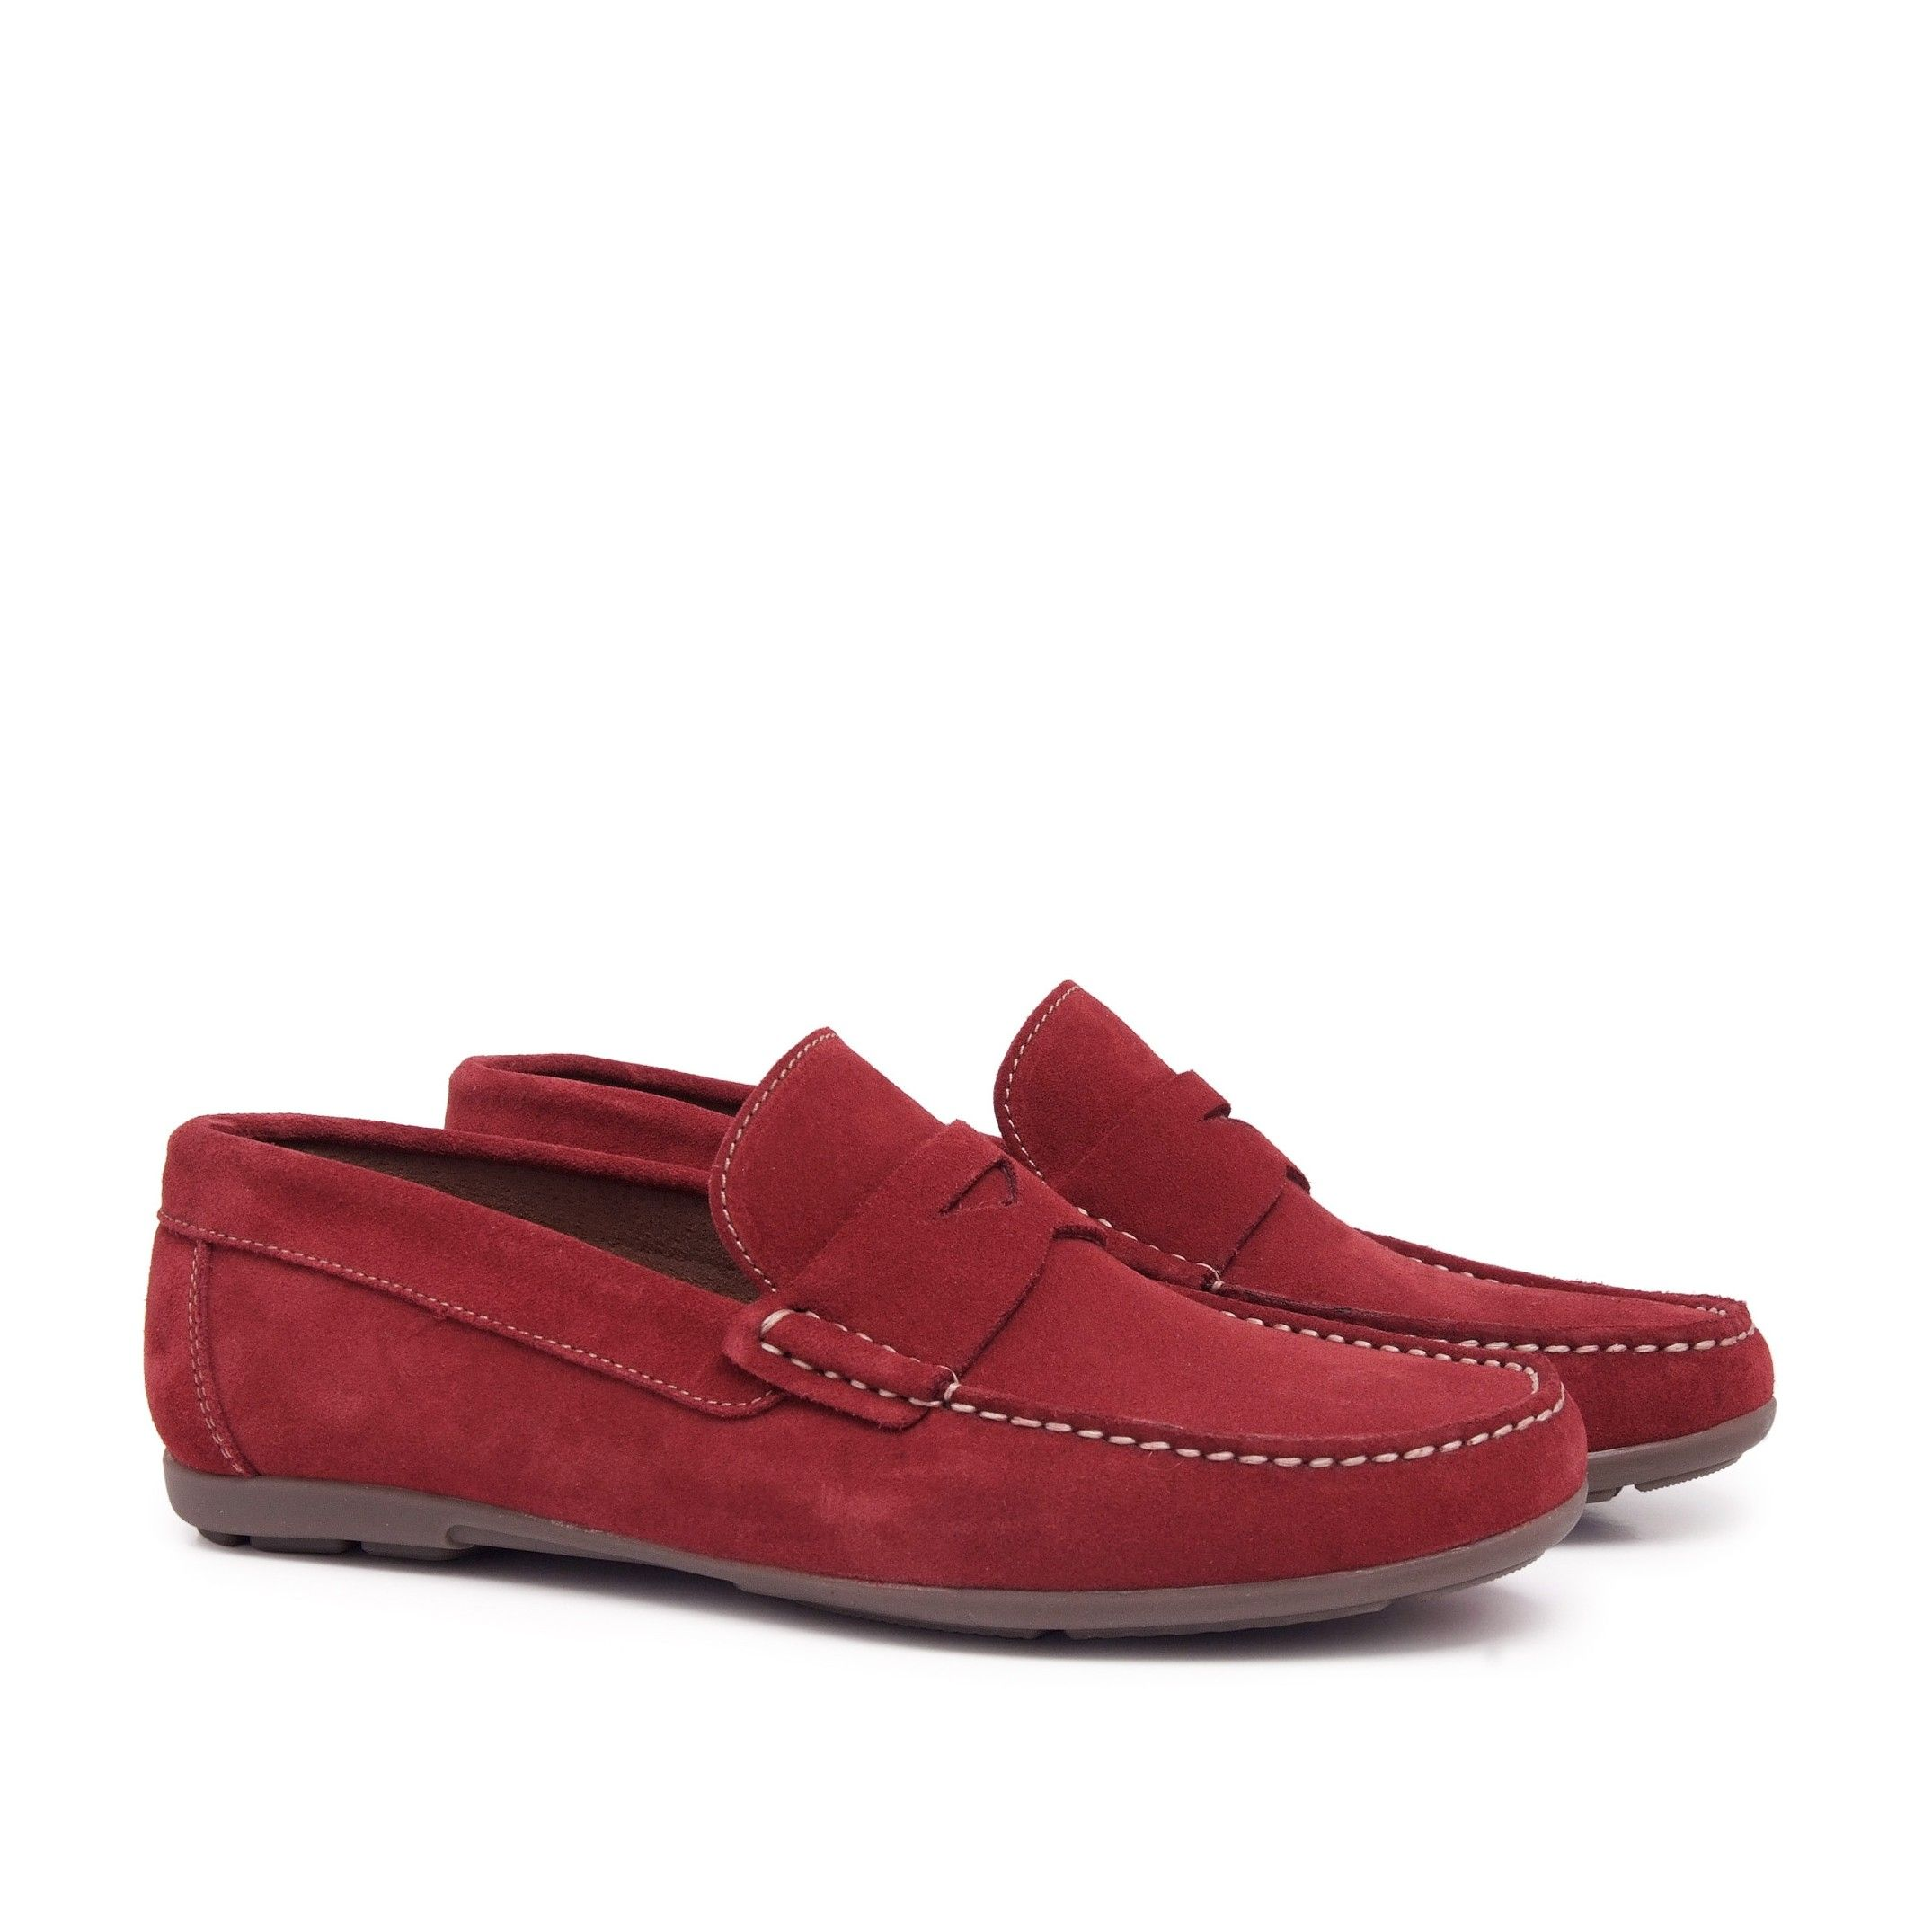 Men's Leather Moccasin With Mask